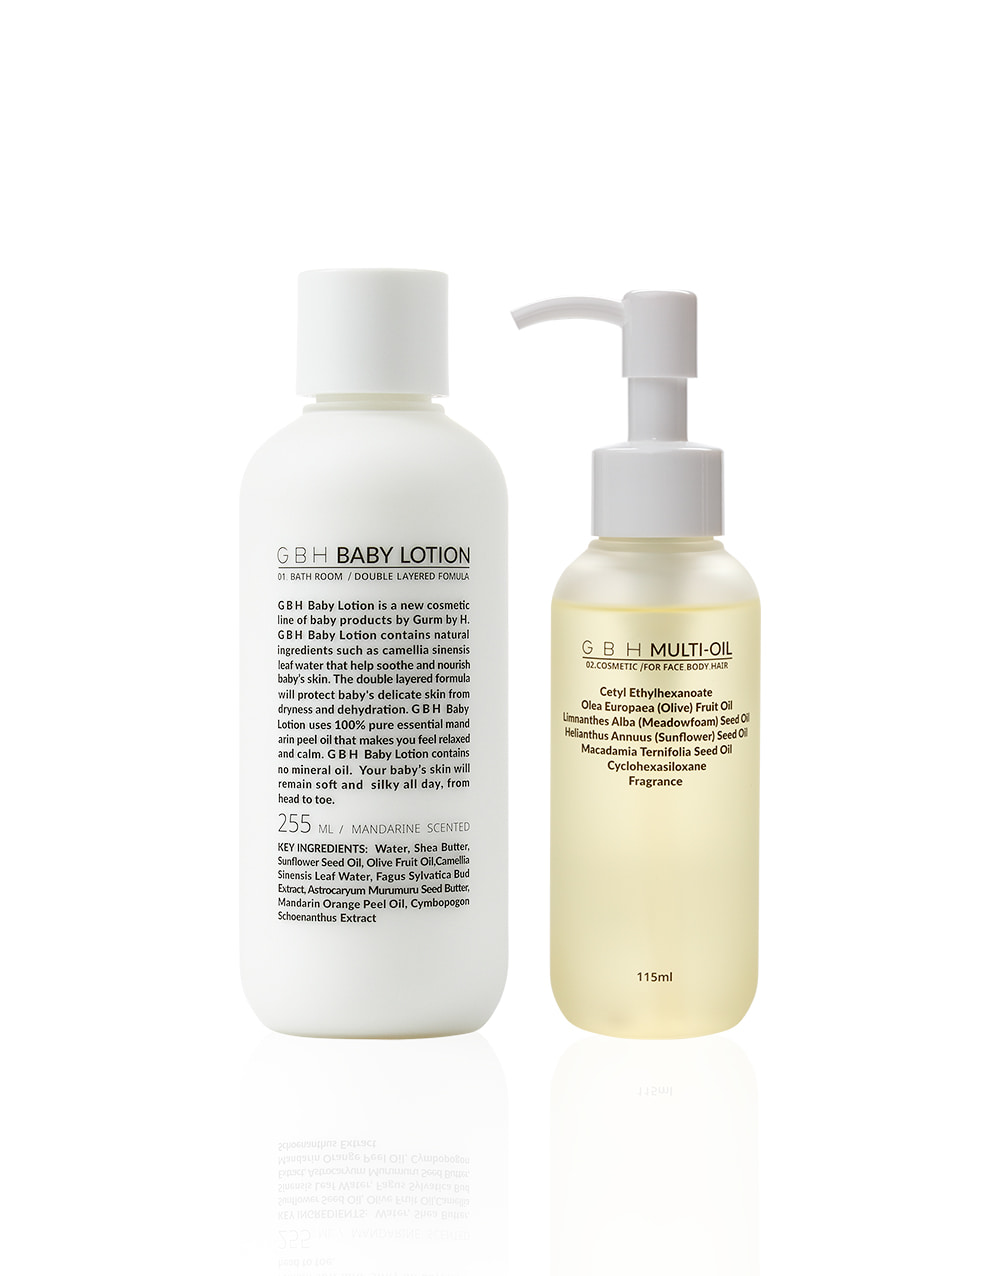 GBH COSMETIC  MULTI-OIL&BABY LOTION SET  셋트 할인 10%